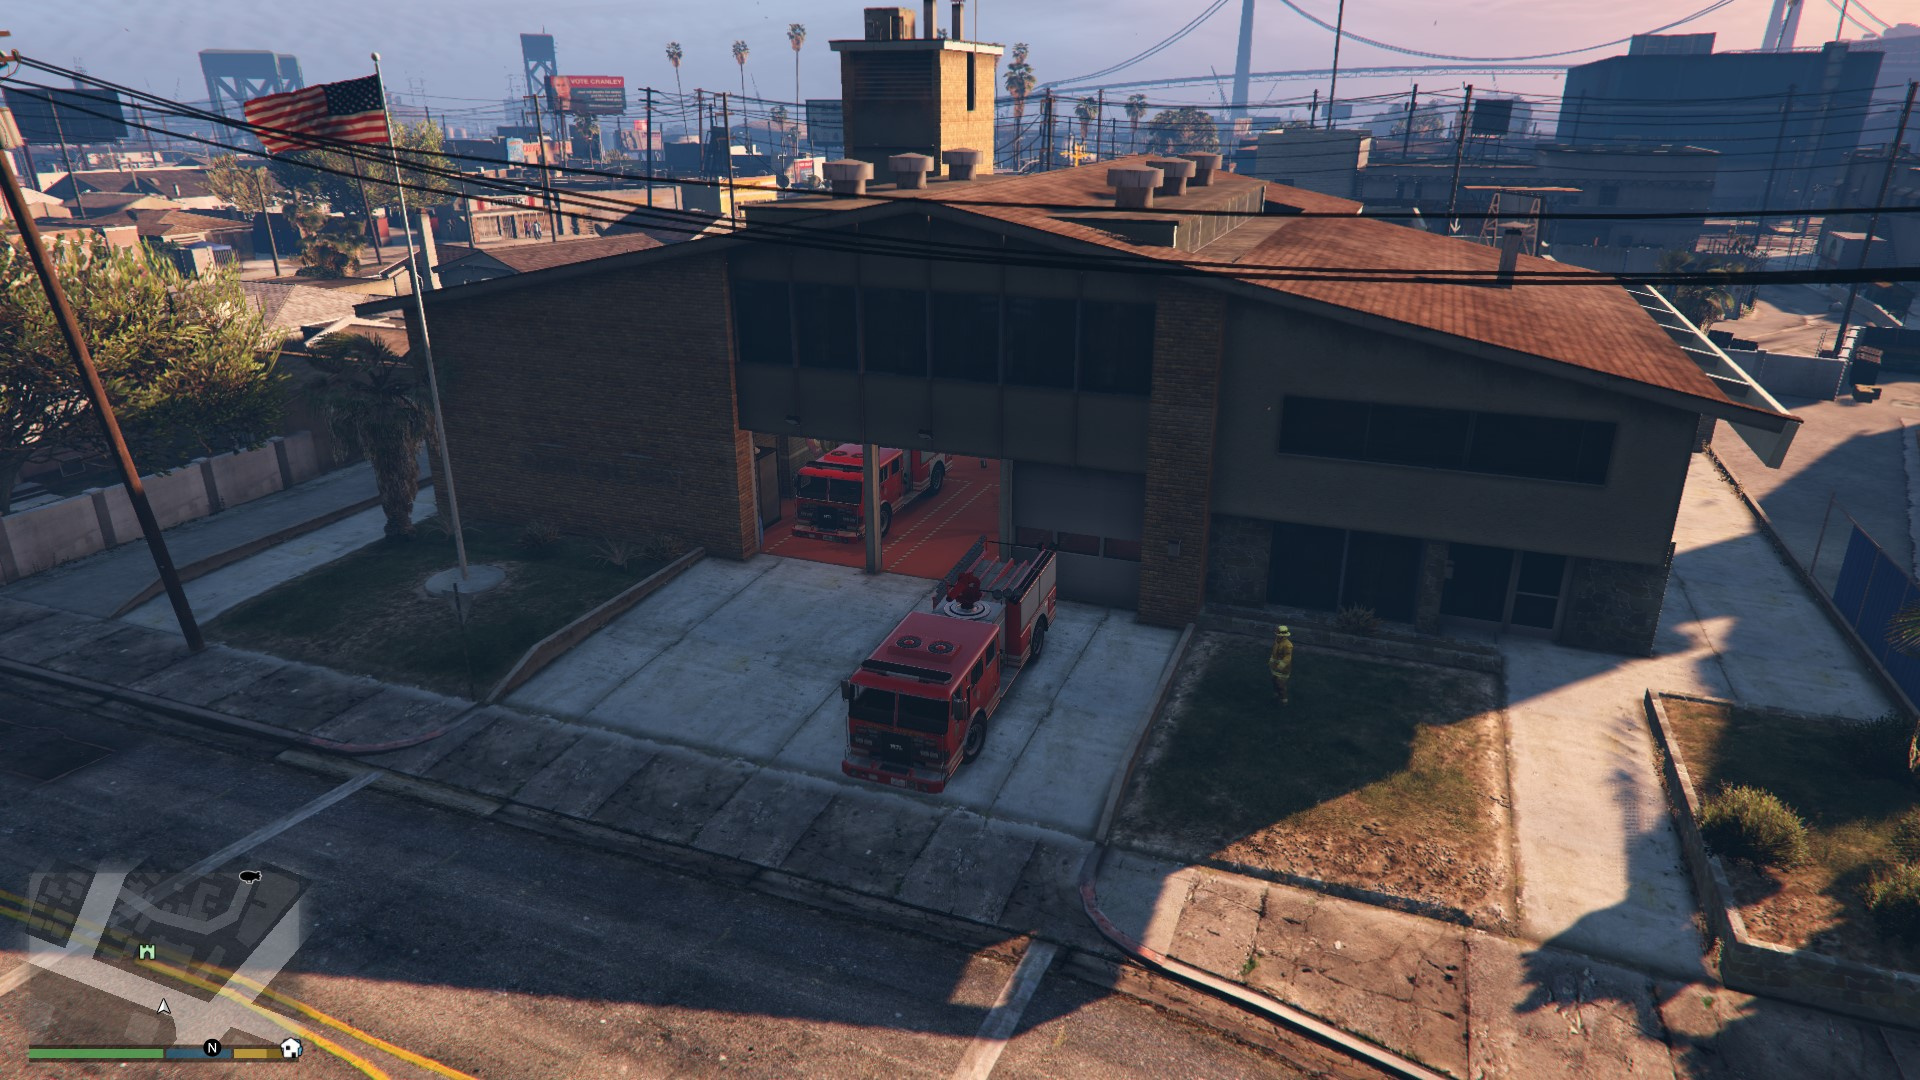 Bureau lsfd optimiser pour five m gta mods